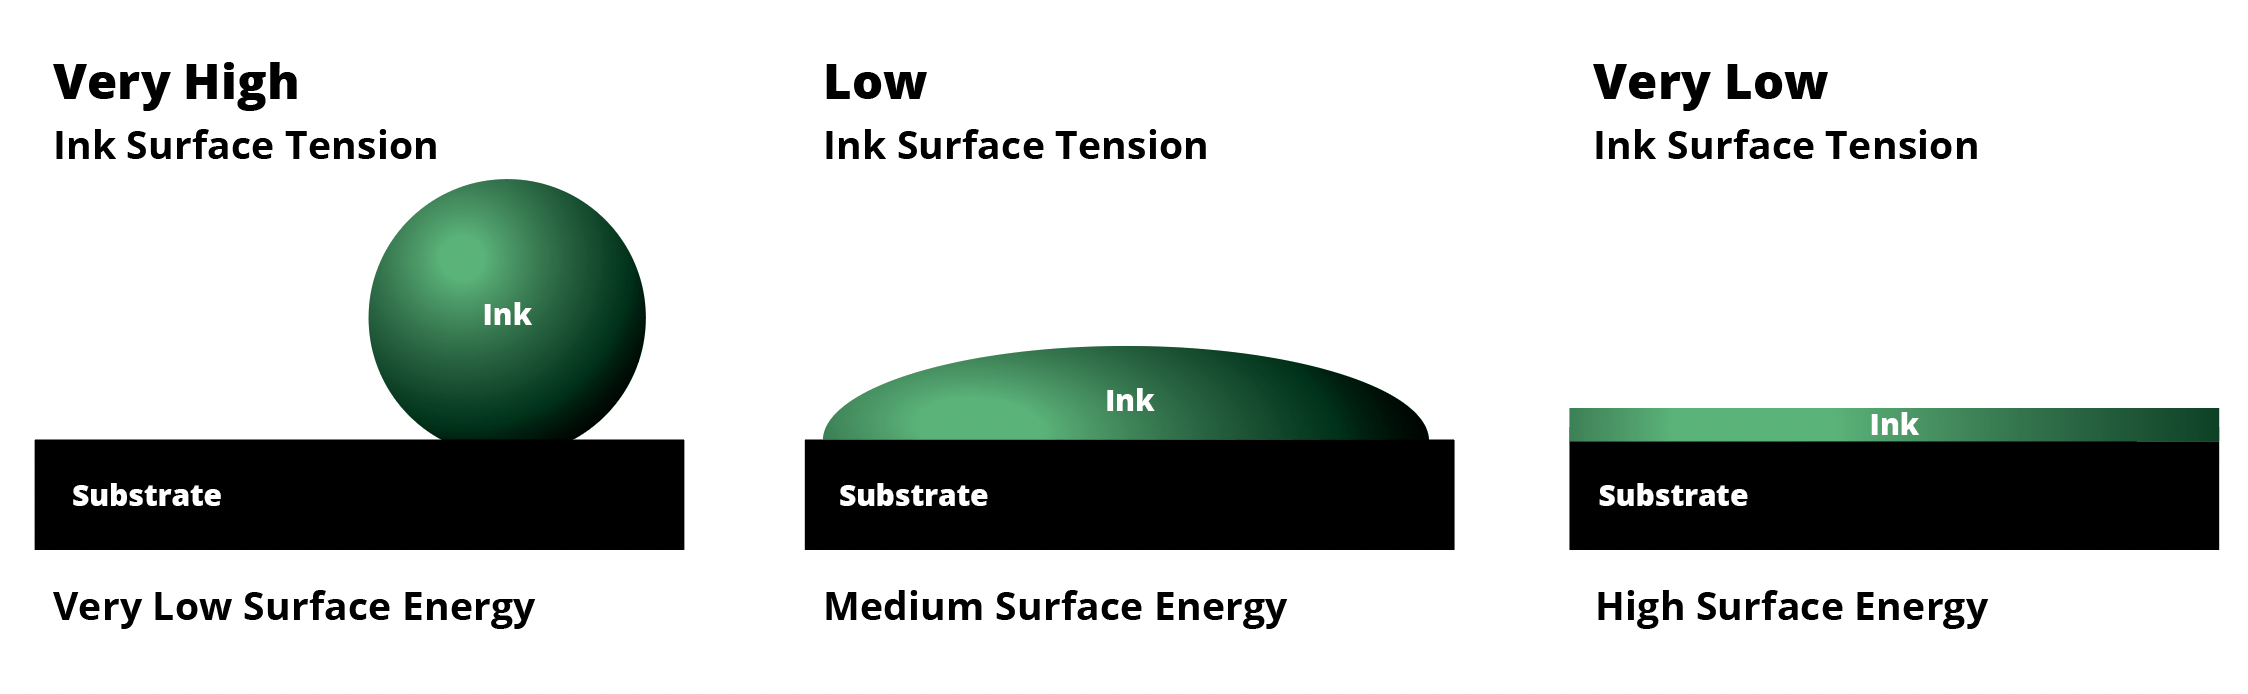 illustration showing relationship of surface tension of ink and surface energy of substrate